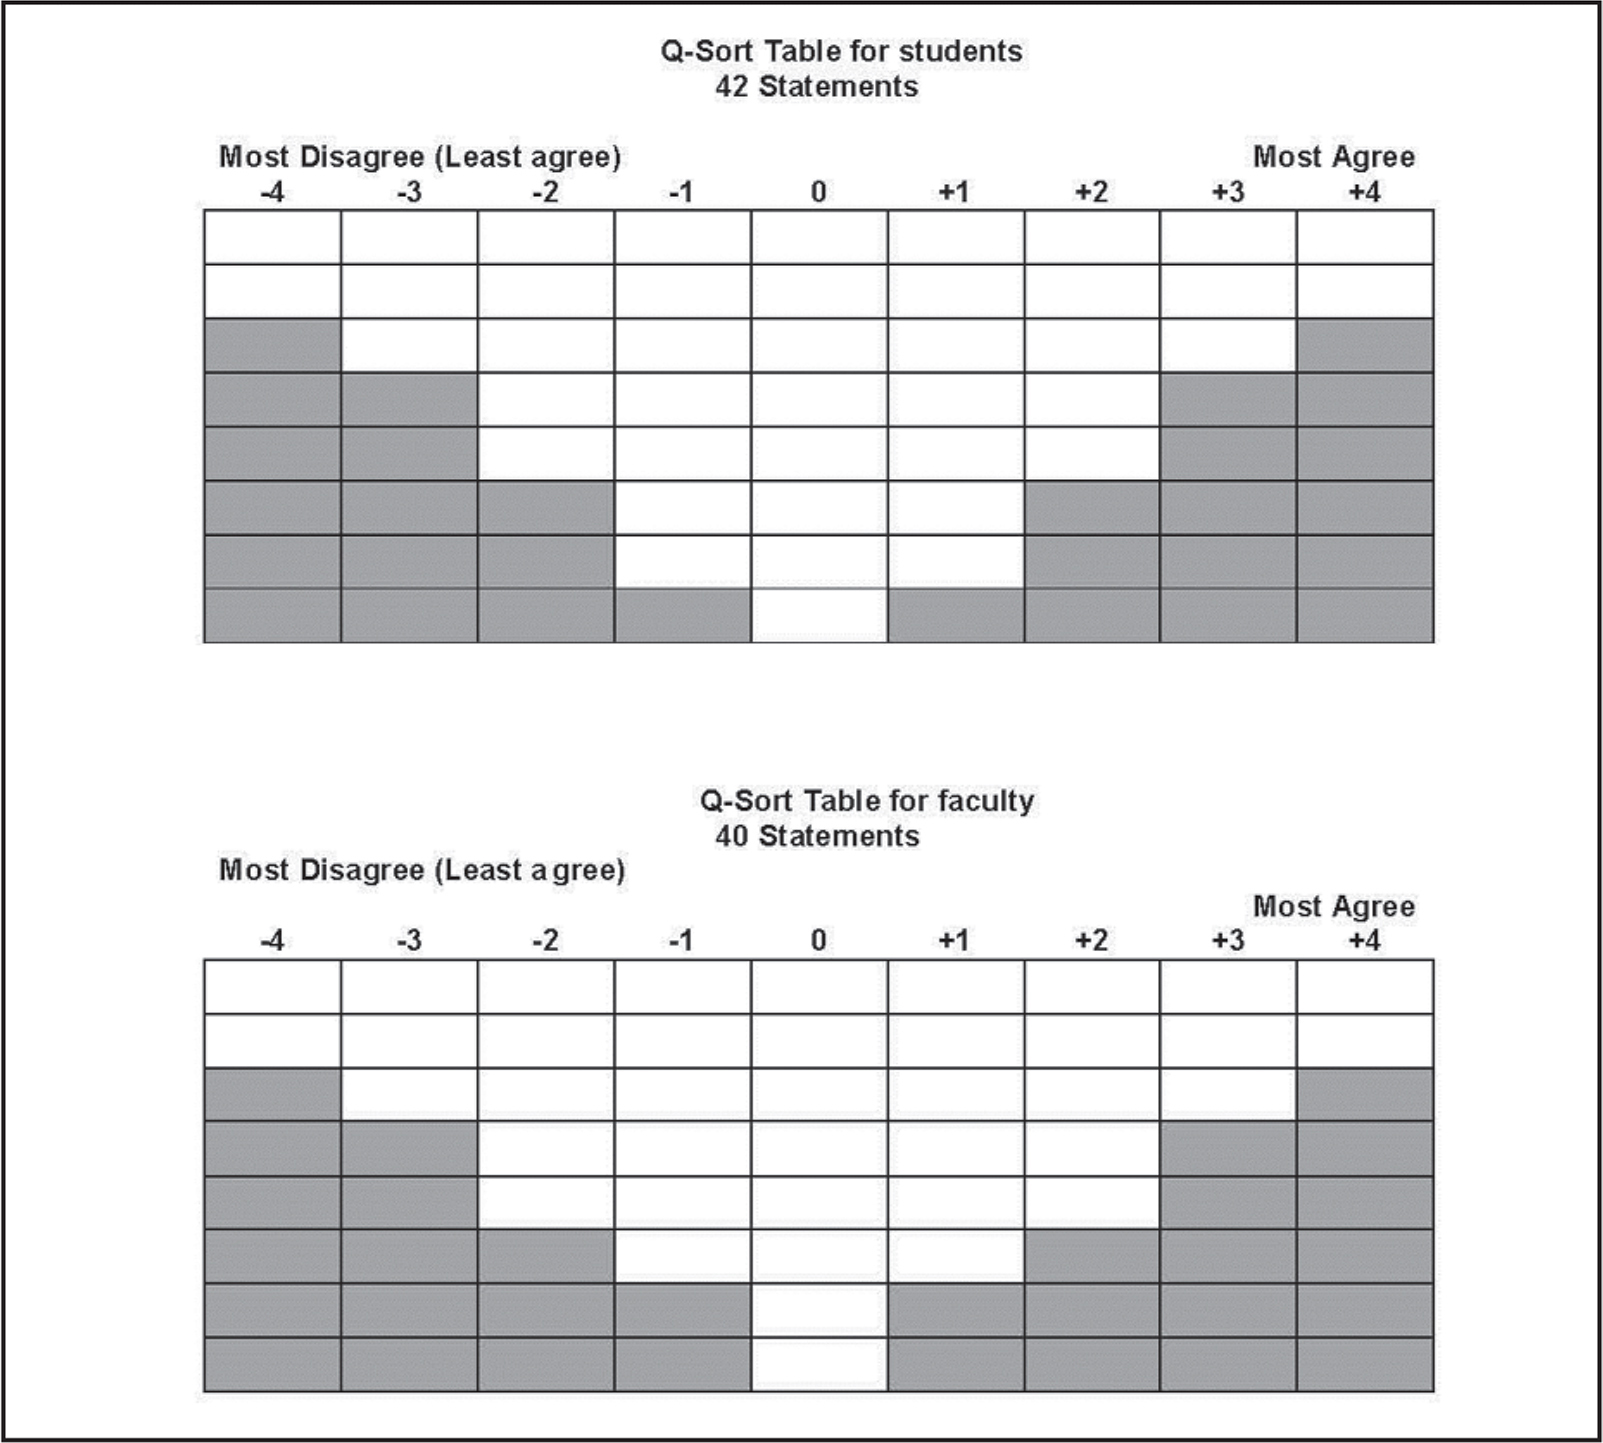 Q-sort tables for students and faculty.